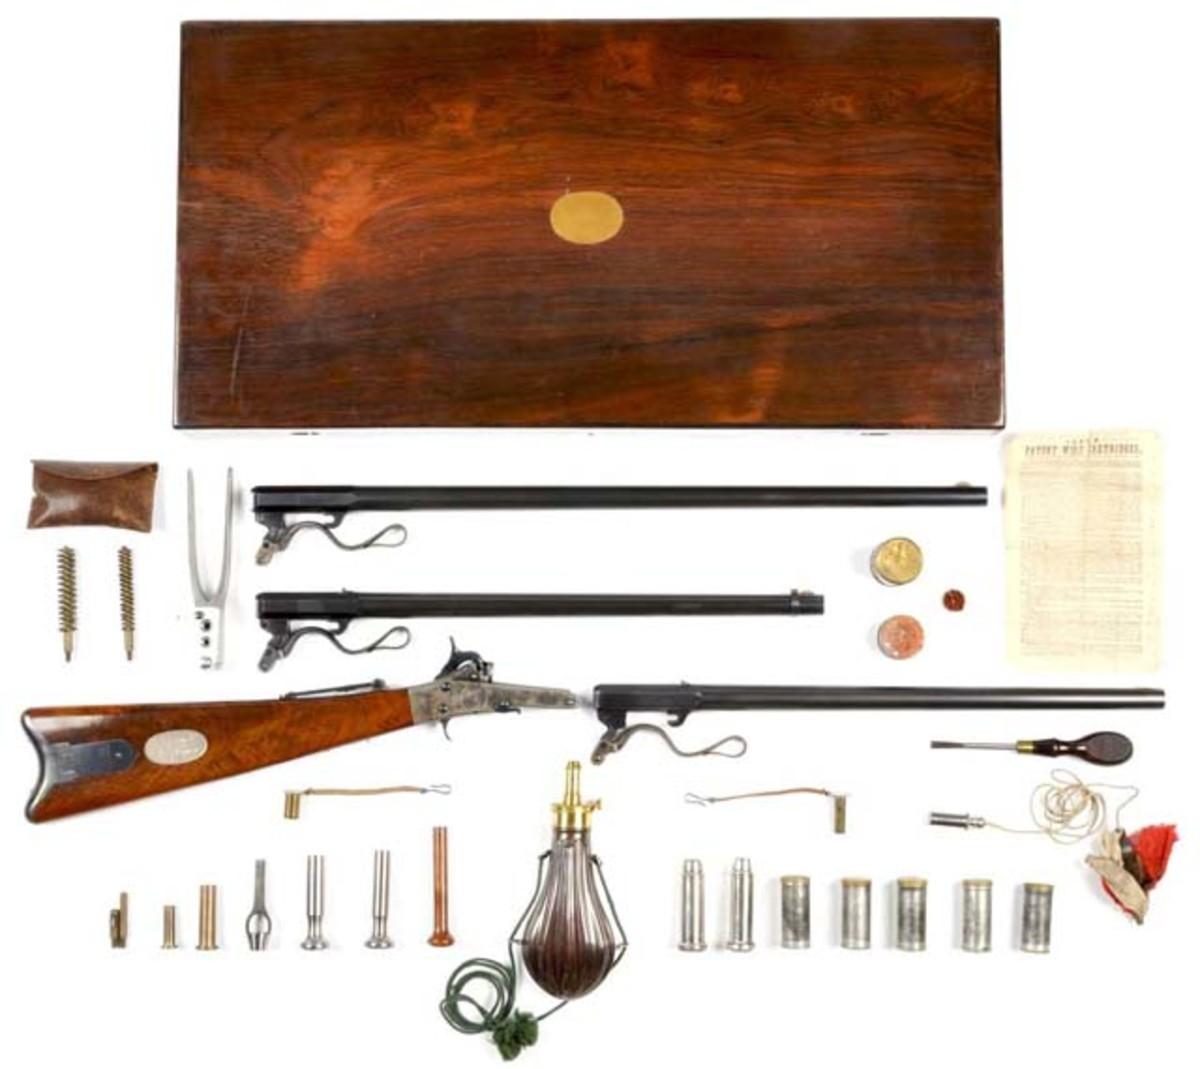 Presentation Maynard cased, multiple-barrel sporting rifle, Civil War era, estimate $20,000-$25,000. Morphy Auctions image